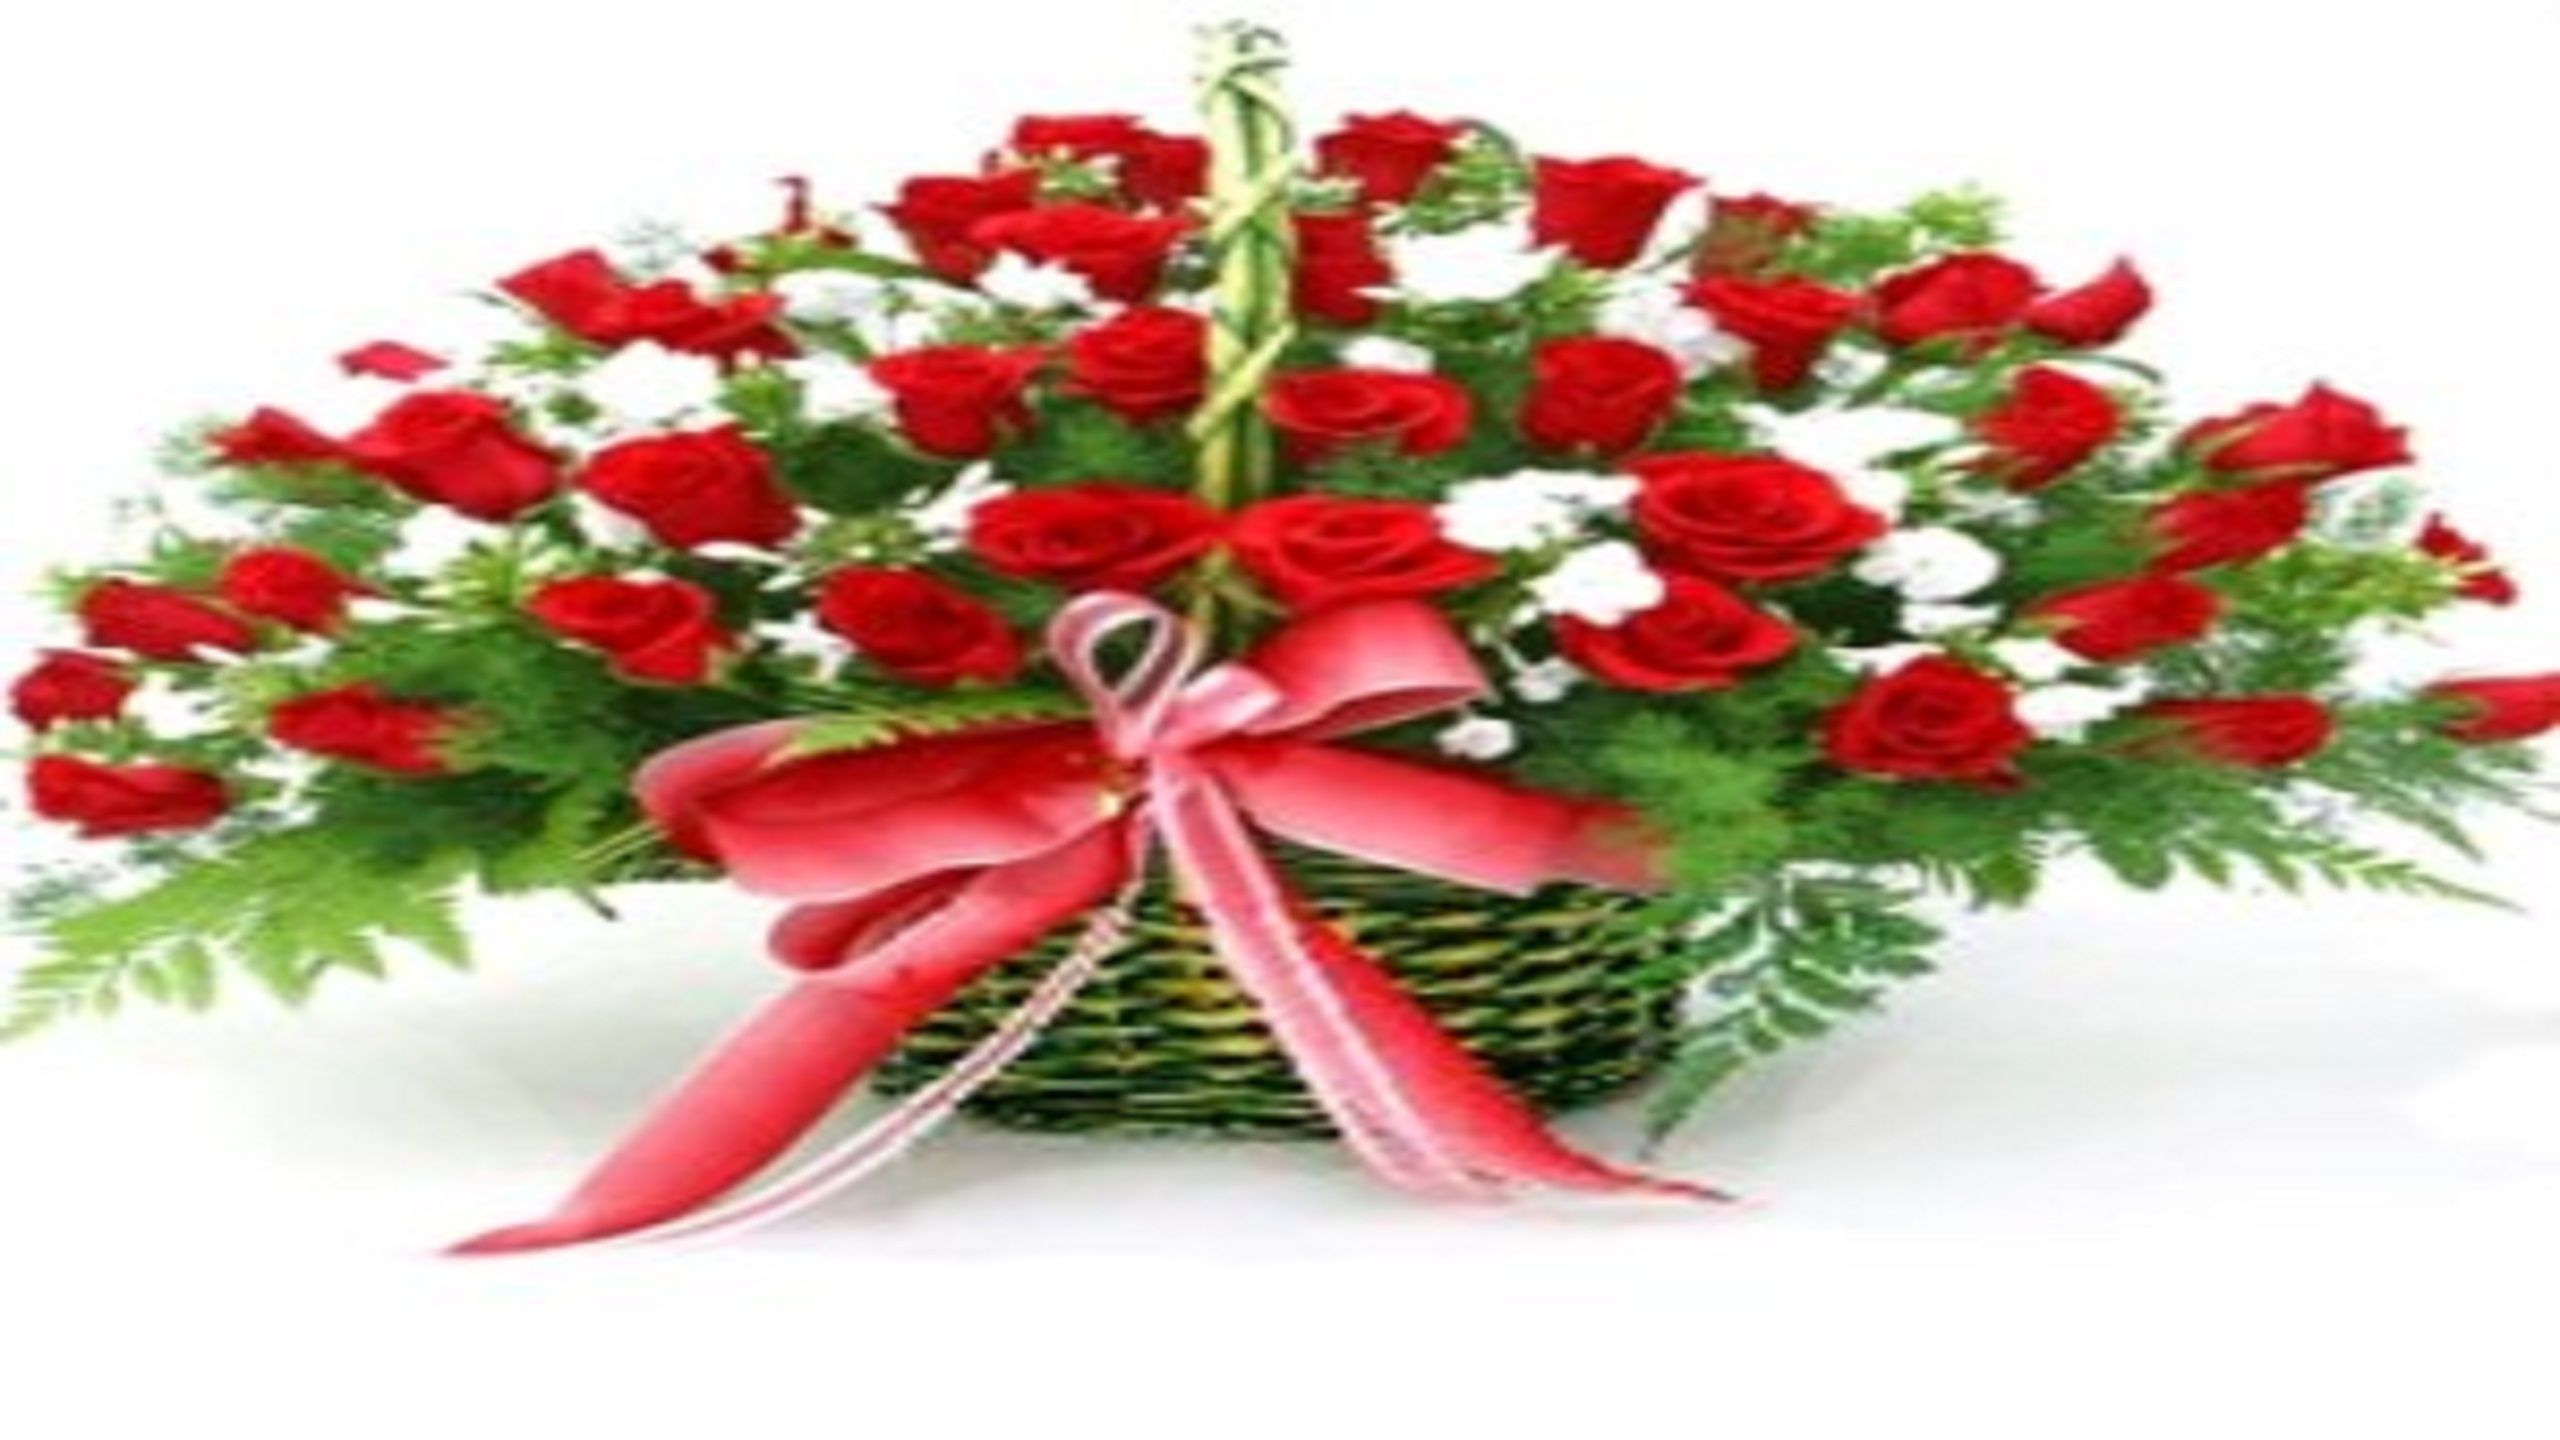 Flowrshop18 offering flower delivery hyderabad send flowers your flowrshop18 offering flower delivery hyderabad send flowers your special person to send flowers hyderabad izmirmasajfo